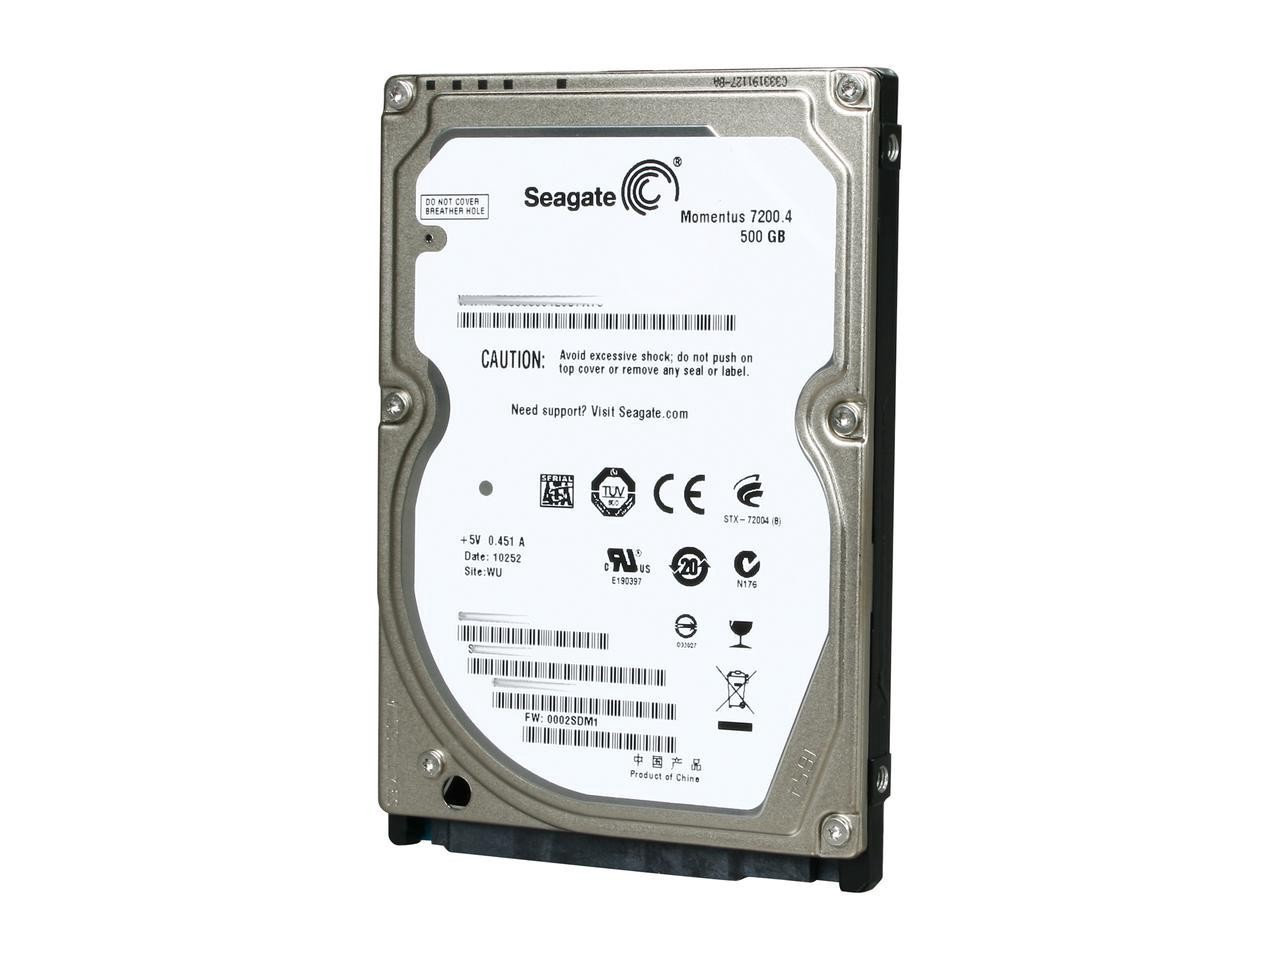 SEAGATE Momentus 500GB Laptop HDD